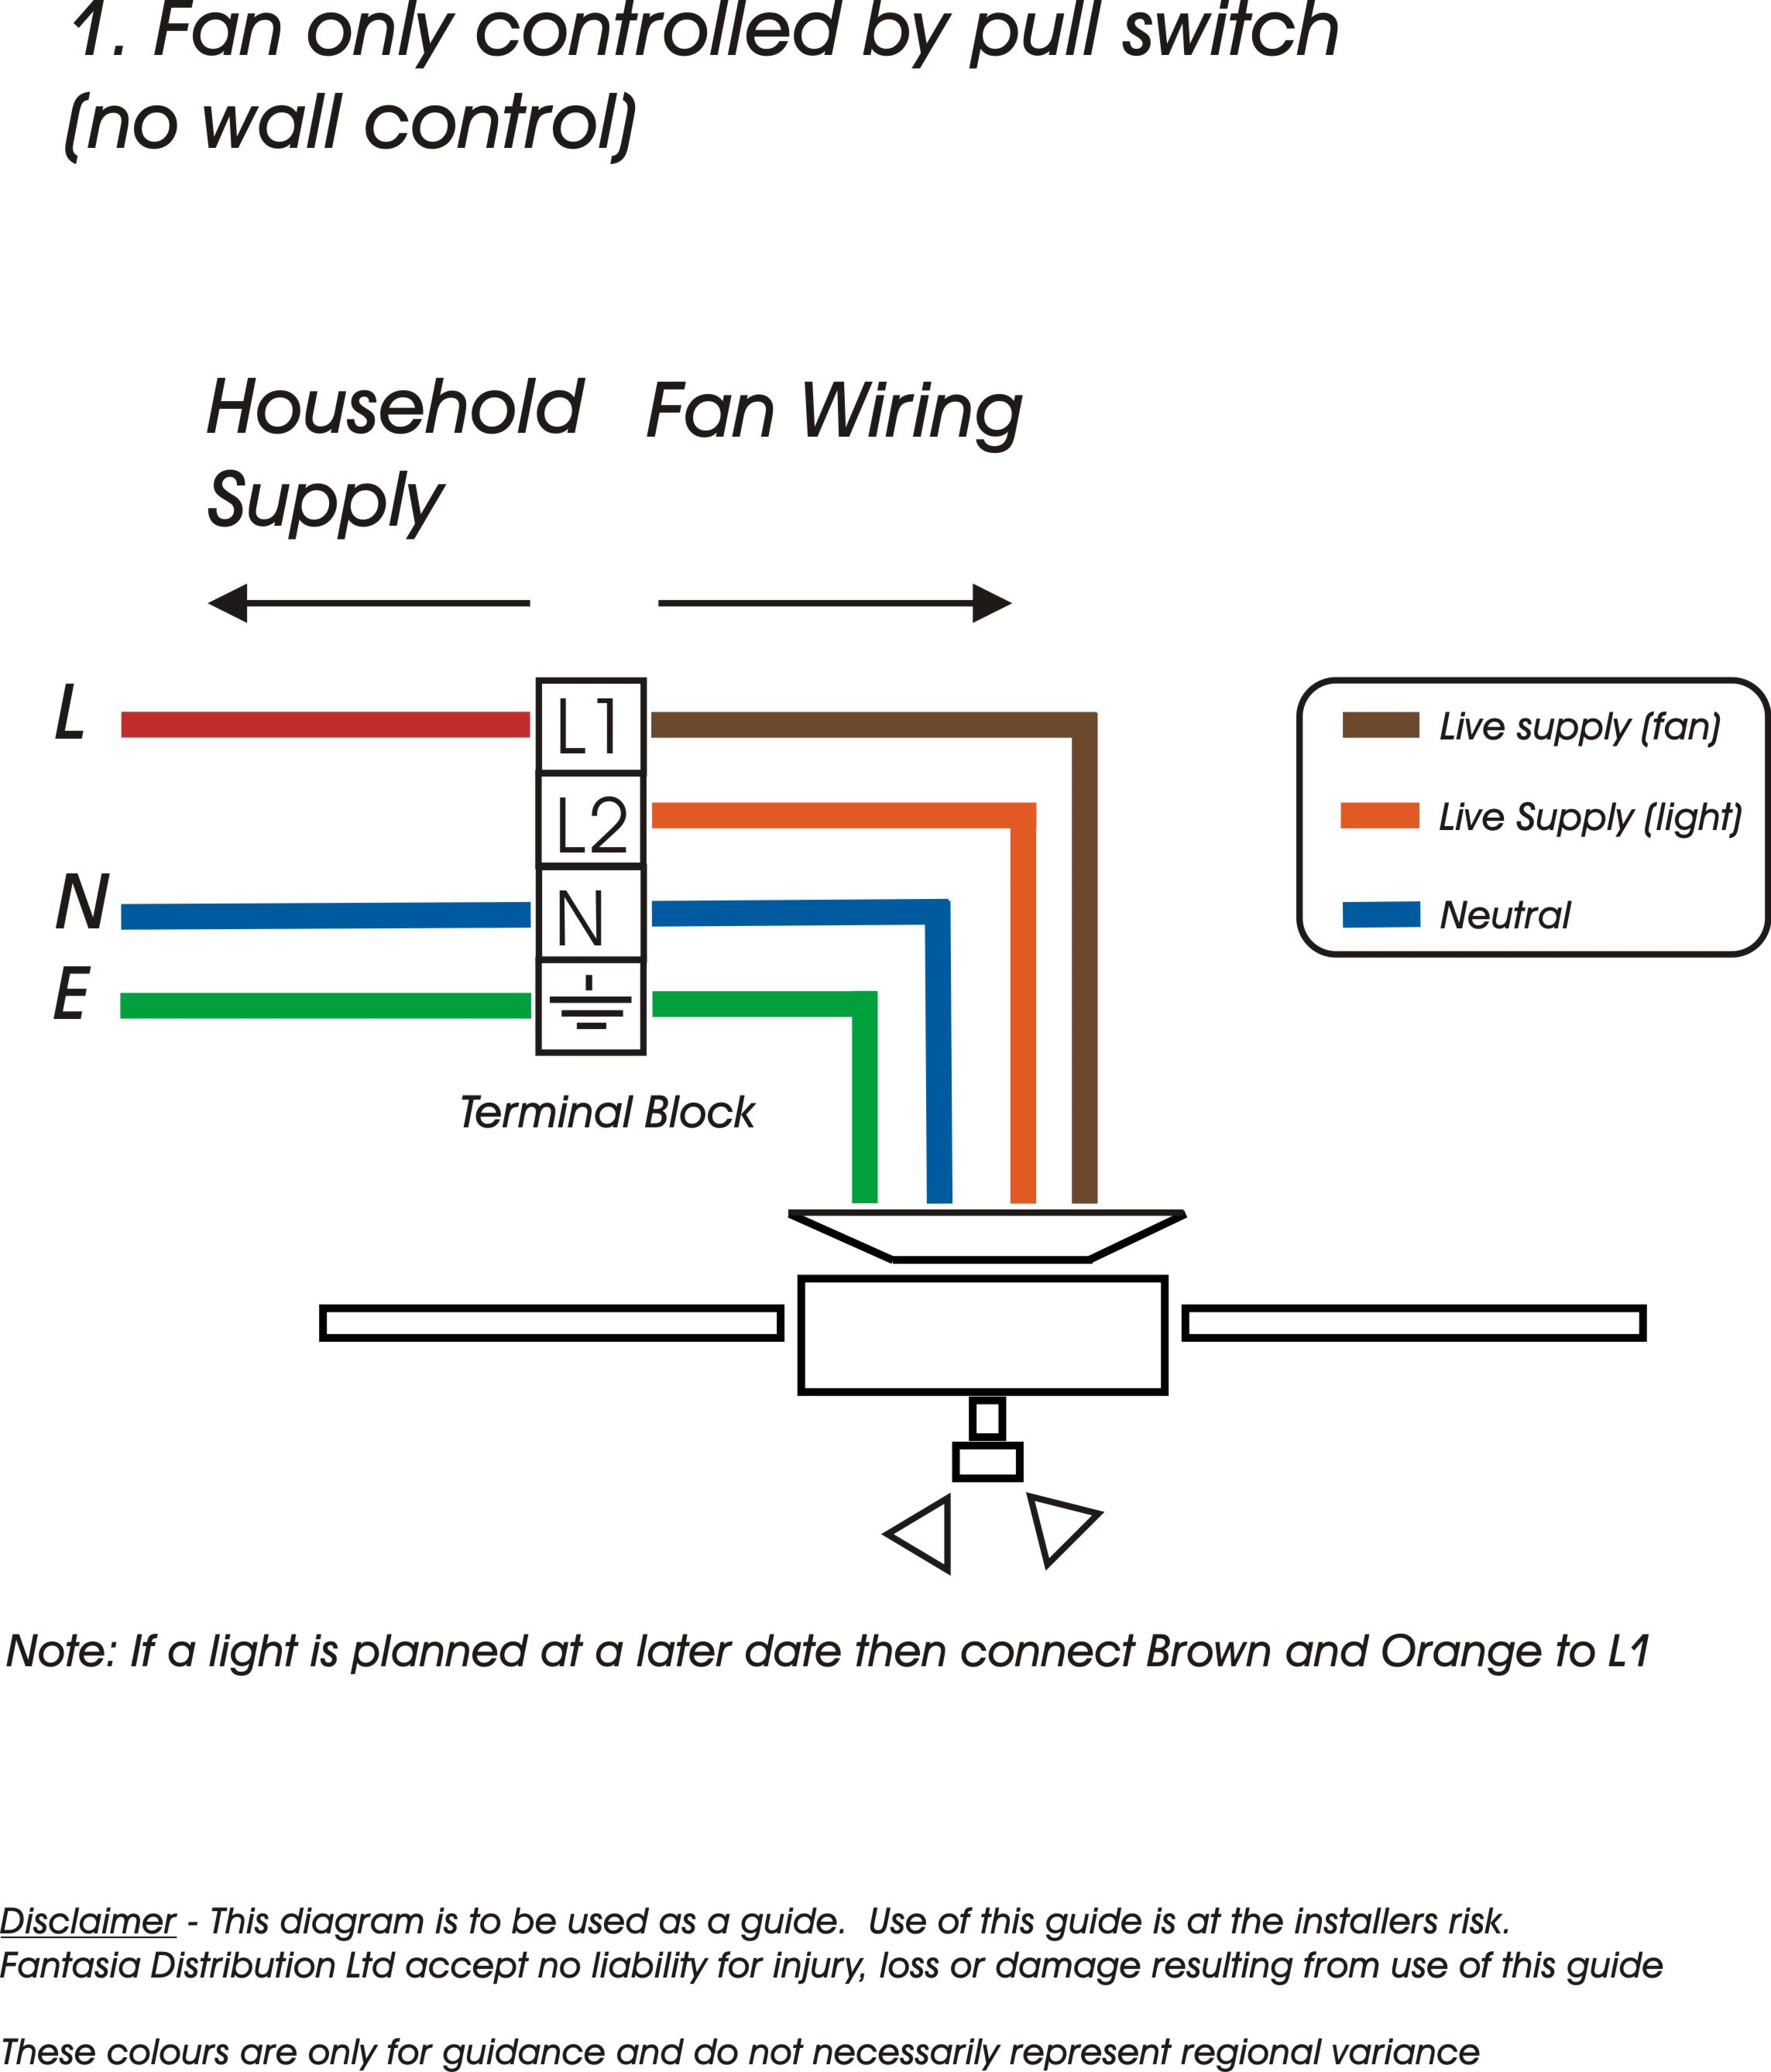 House Fan Switch Wiring Diagram Dpdt | Wiring Diagram - 2 Speed Whole House Fan Switch Wiring Diagram